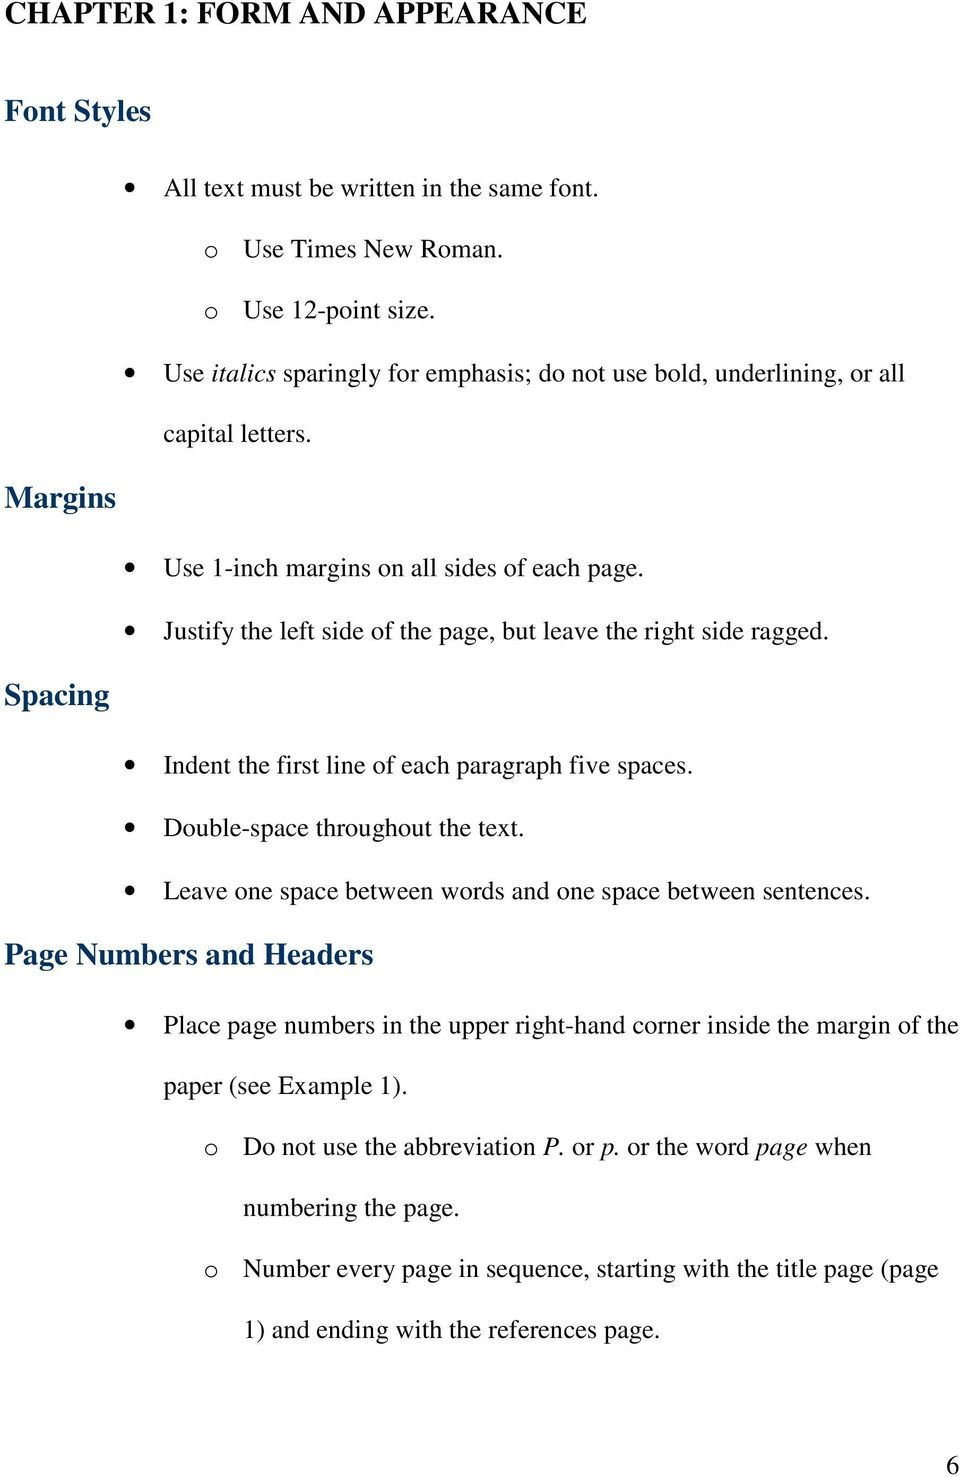 Justify the left side of the page, but leave the right side ragged. Indent the first line of each paragraph five spaces. Double-space throughout the text.